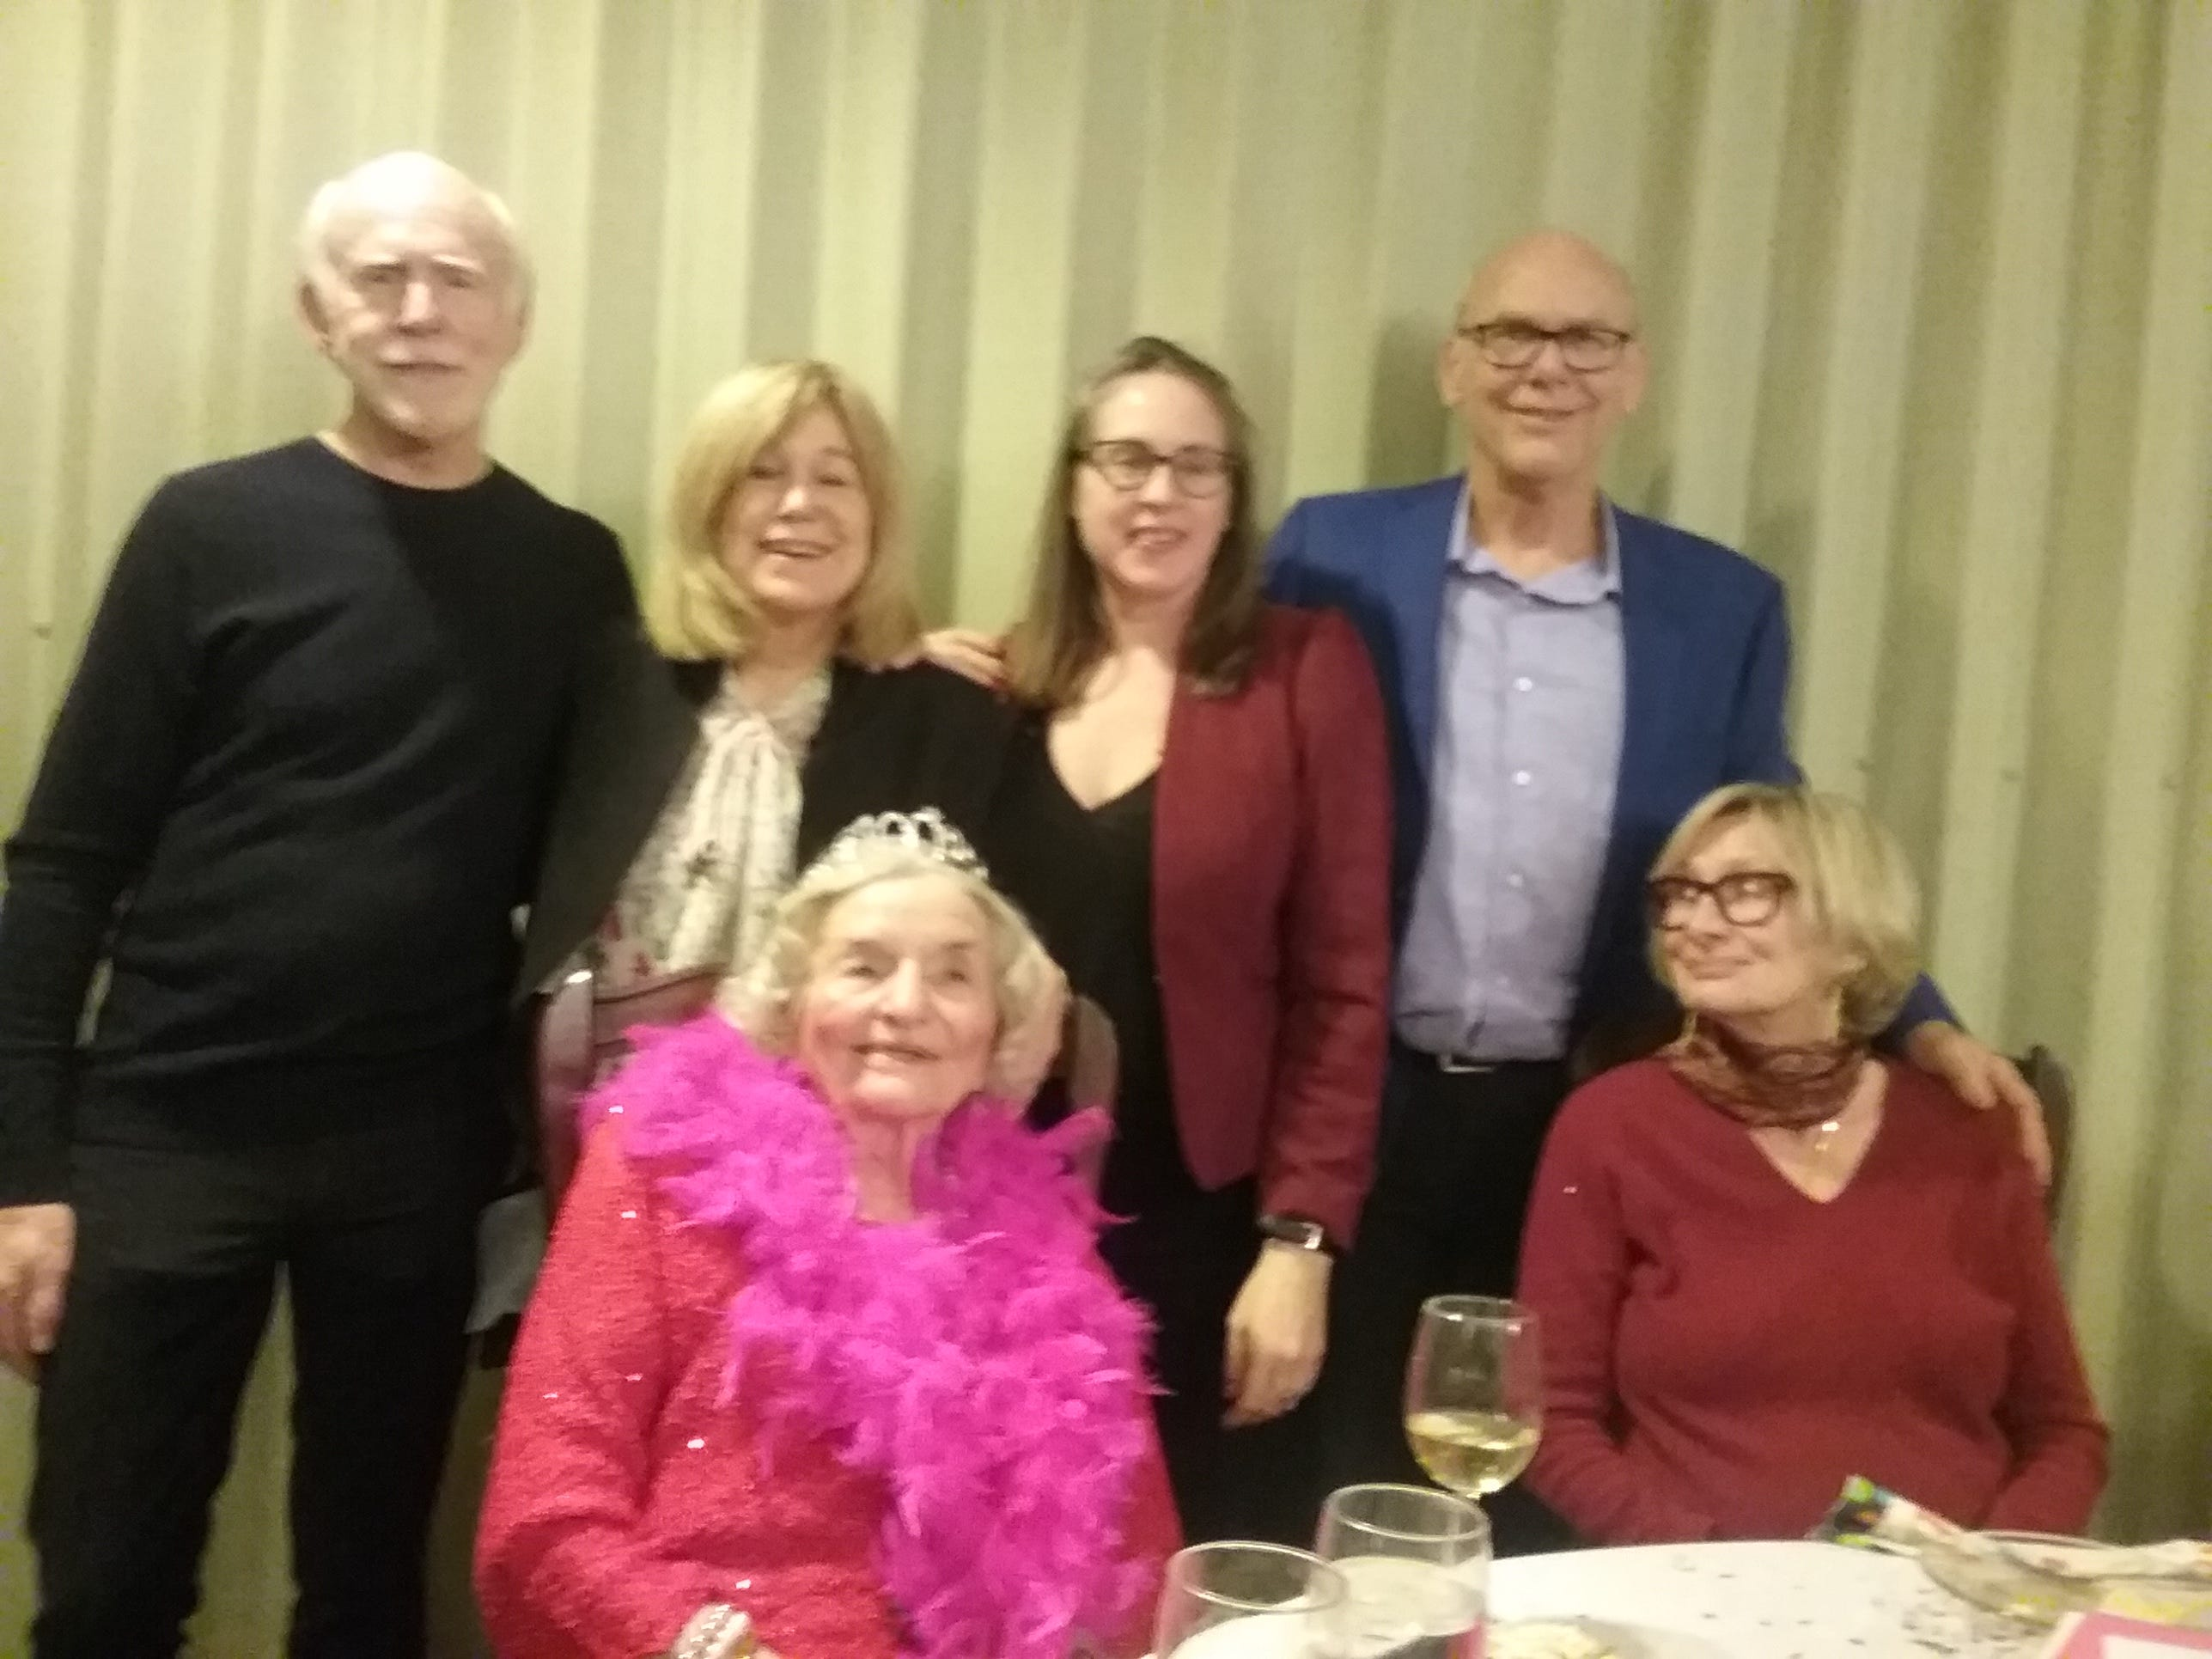 Mary Pyland (seated, at left) celebrates her 100th birthday with her friends Phil Place, Mary Kay Place, Claire Place, Ken Place and Penny Place.